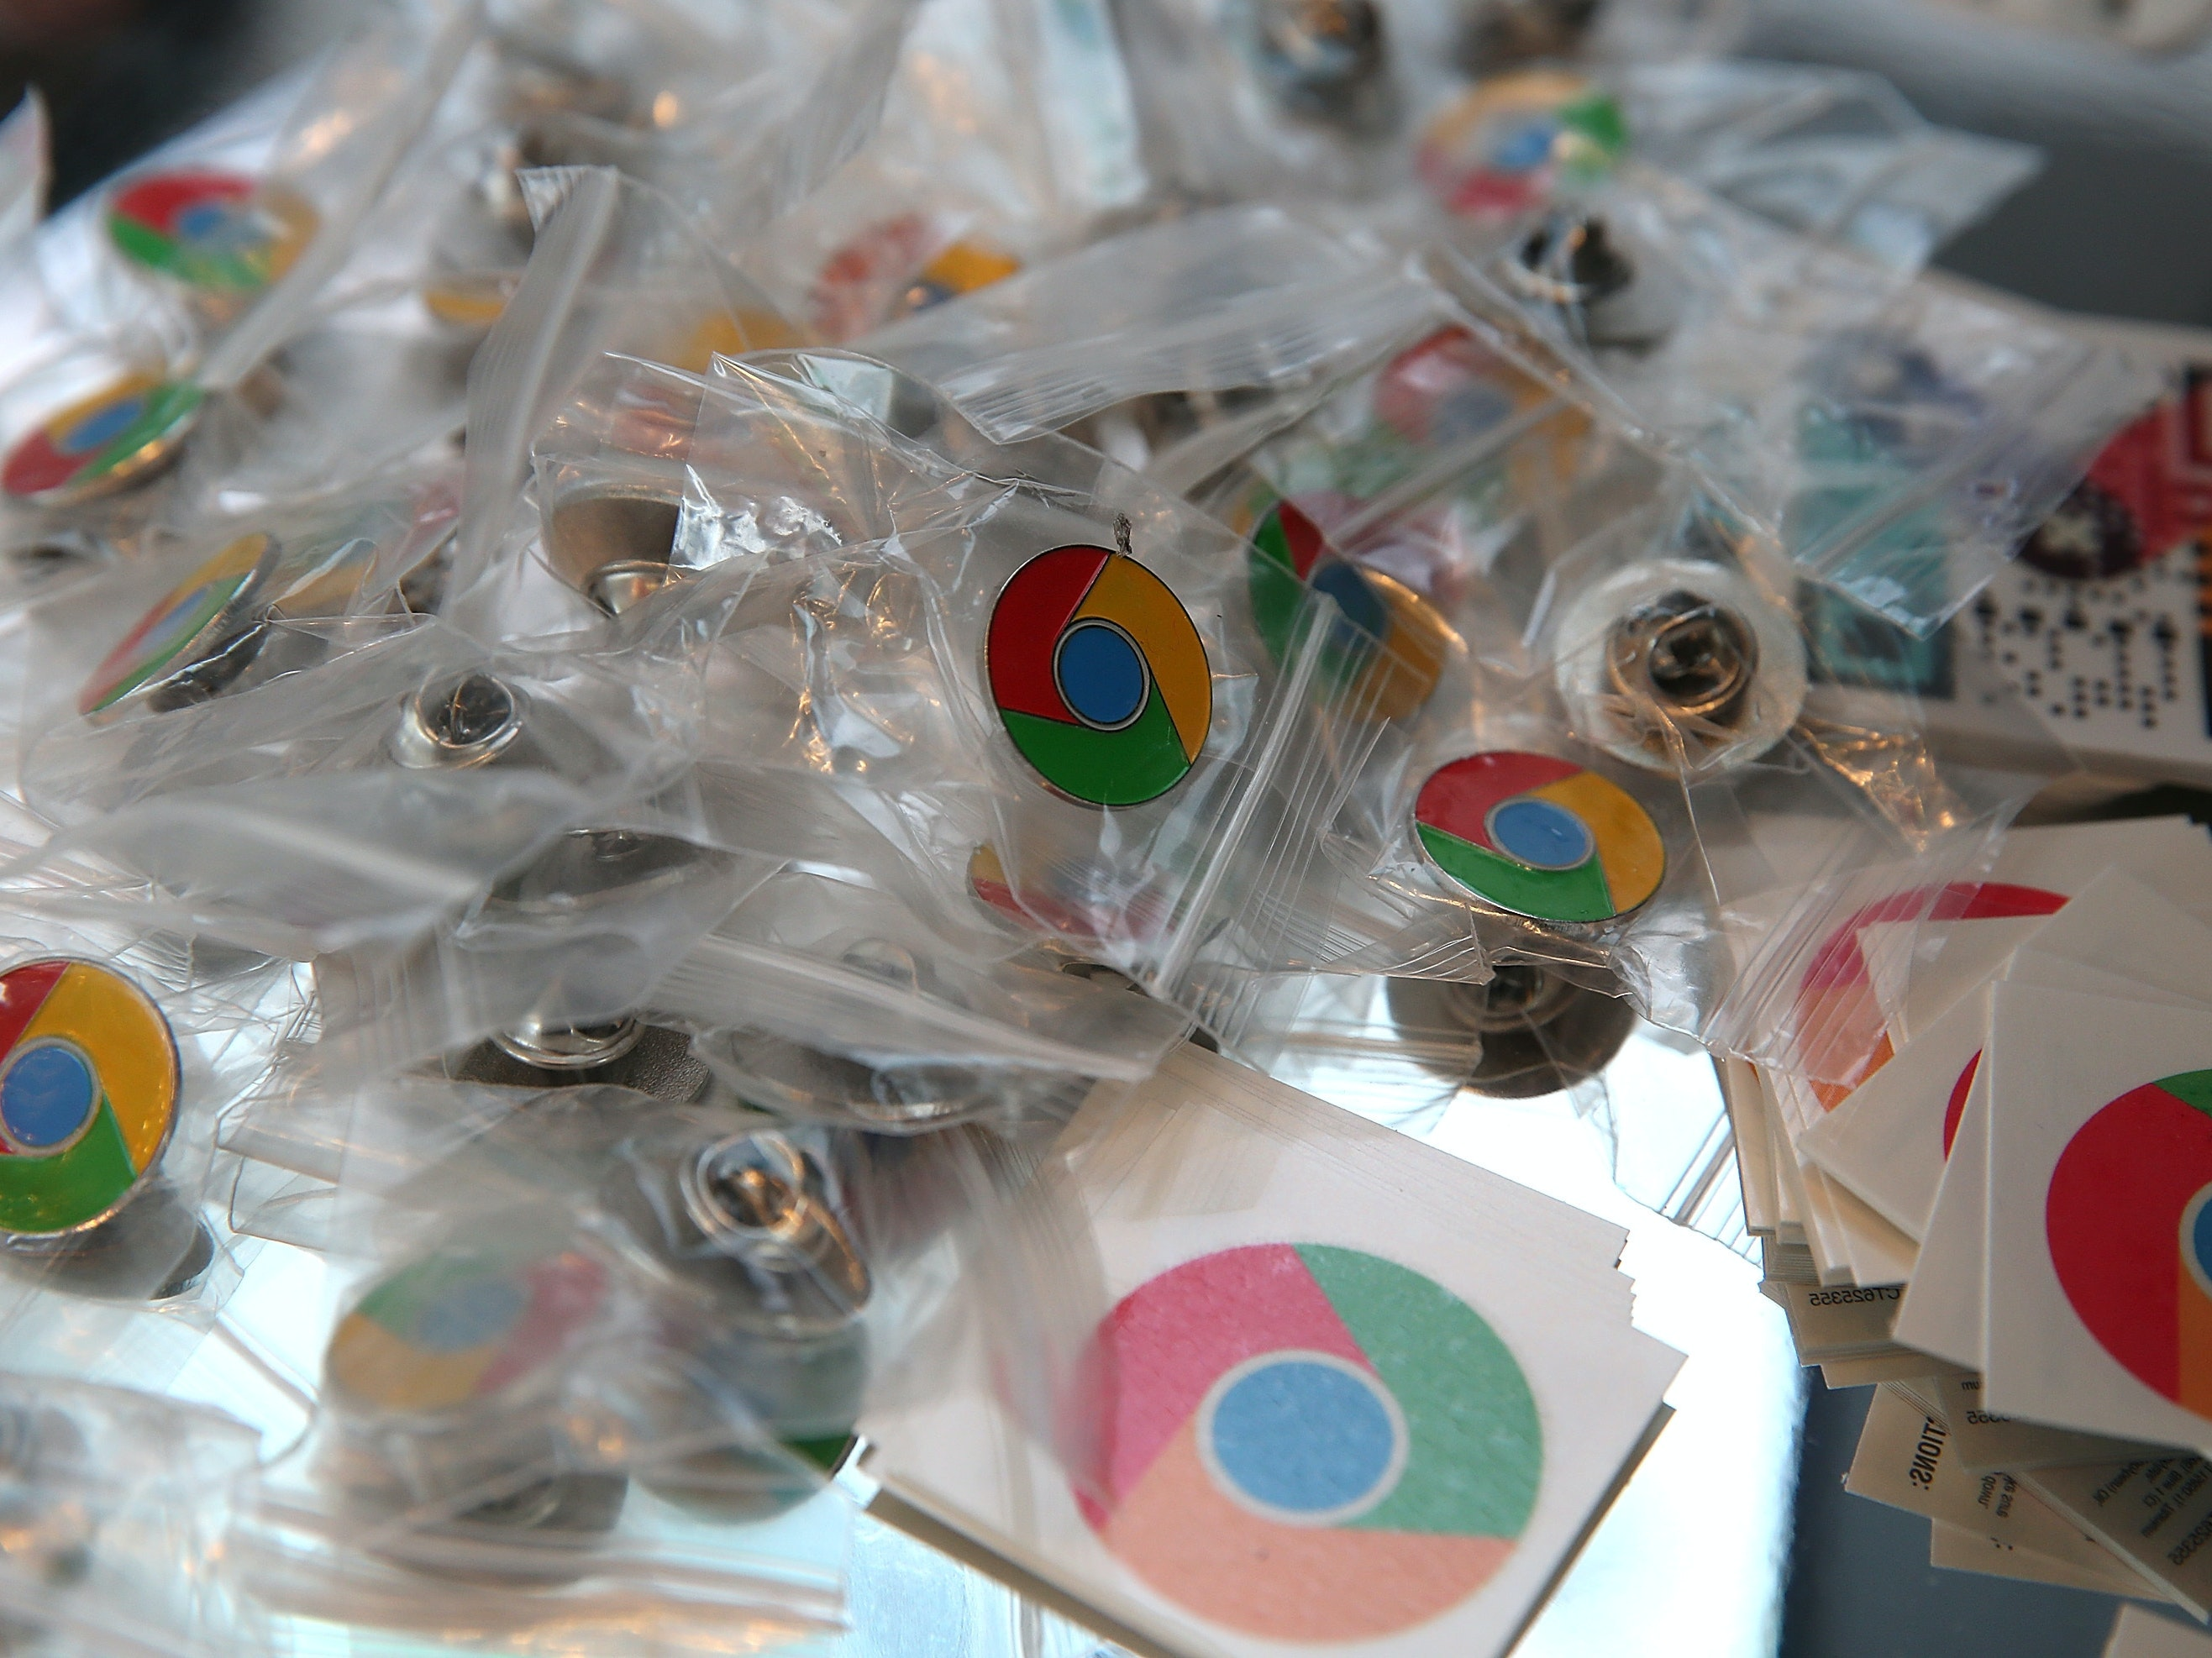 SAN FRANCISCO, CA - MAY 15:  Google Chrome pins and stickers are displayed during the Google I/O developers conference at the Moscone Center on May 15, 2013 in San Francisco, California. Thousands are expected to attend the 2013 Google I/O developers conference that runs through May 17. At the close of the markets today Google shares were at all-time record high at $916 a share, up 3.3 percent.  (Photo by Justin Sullivan/Getty Images)